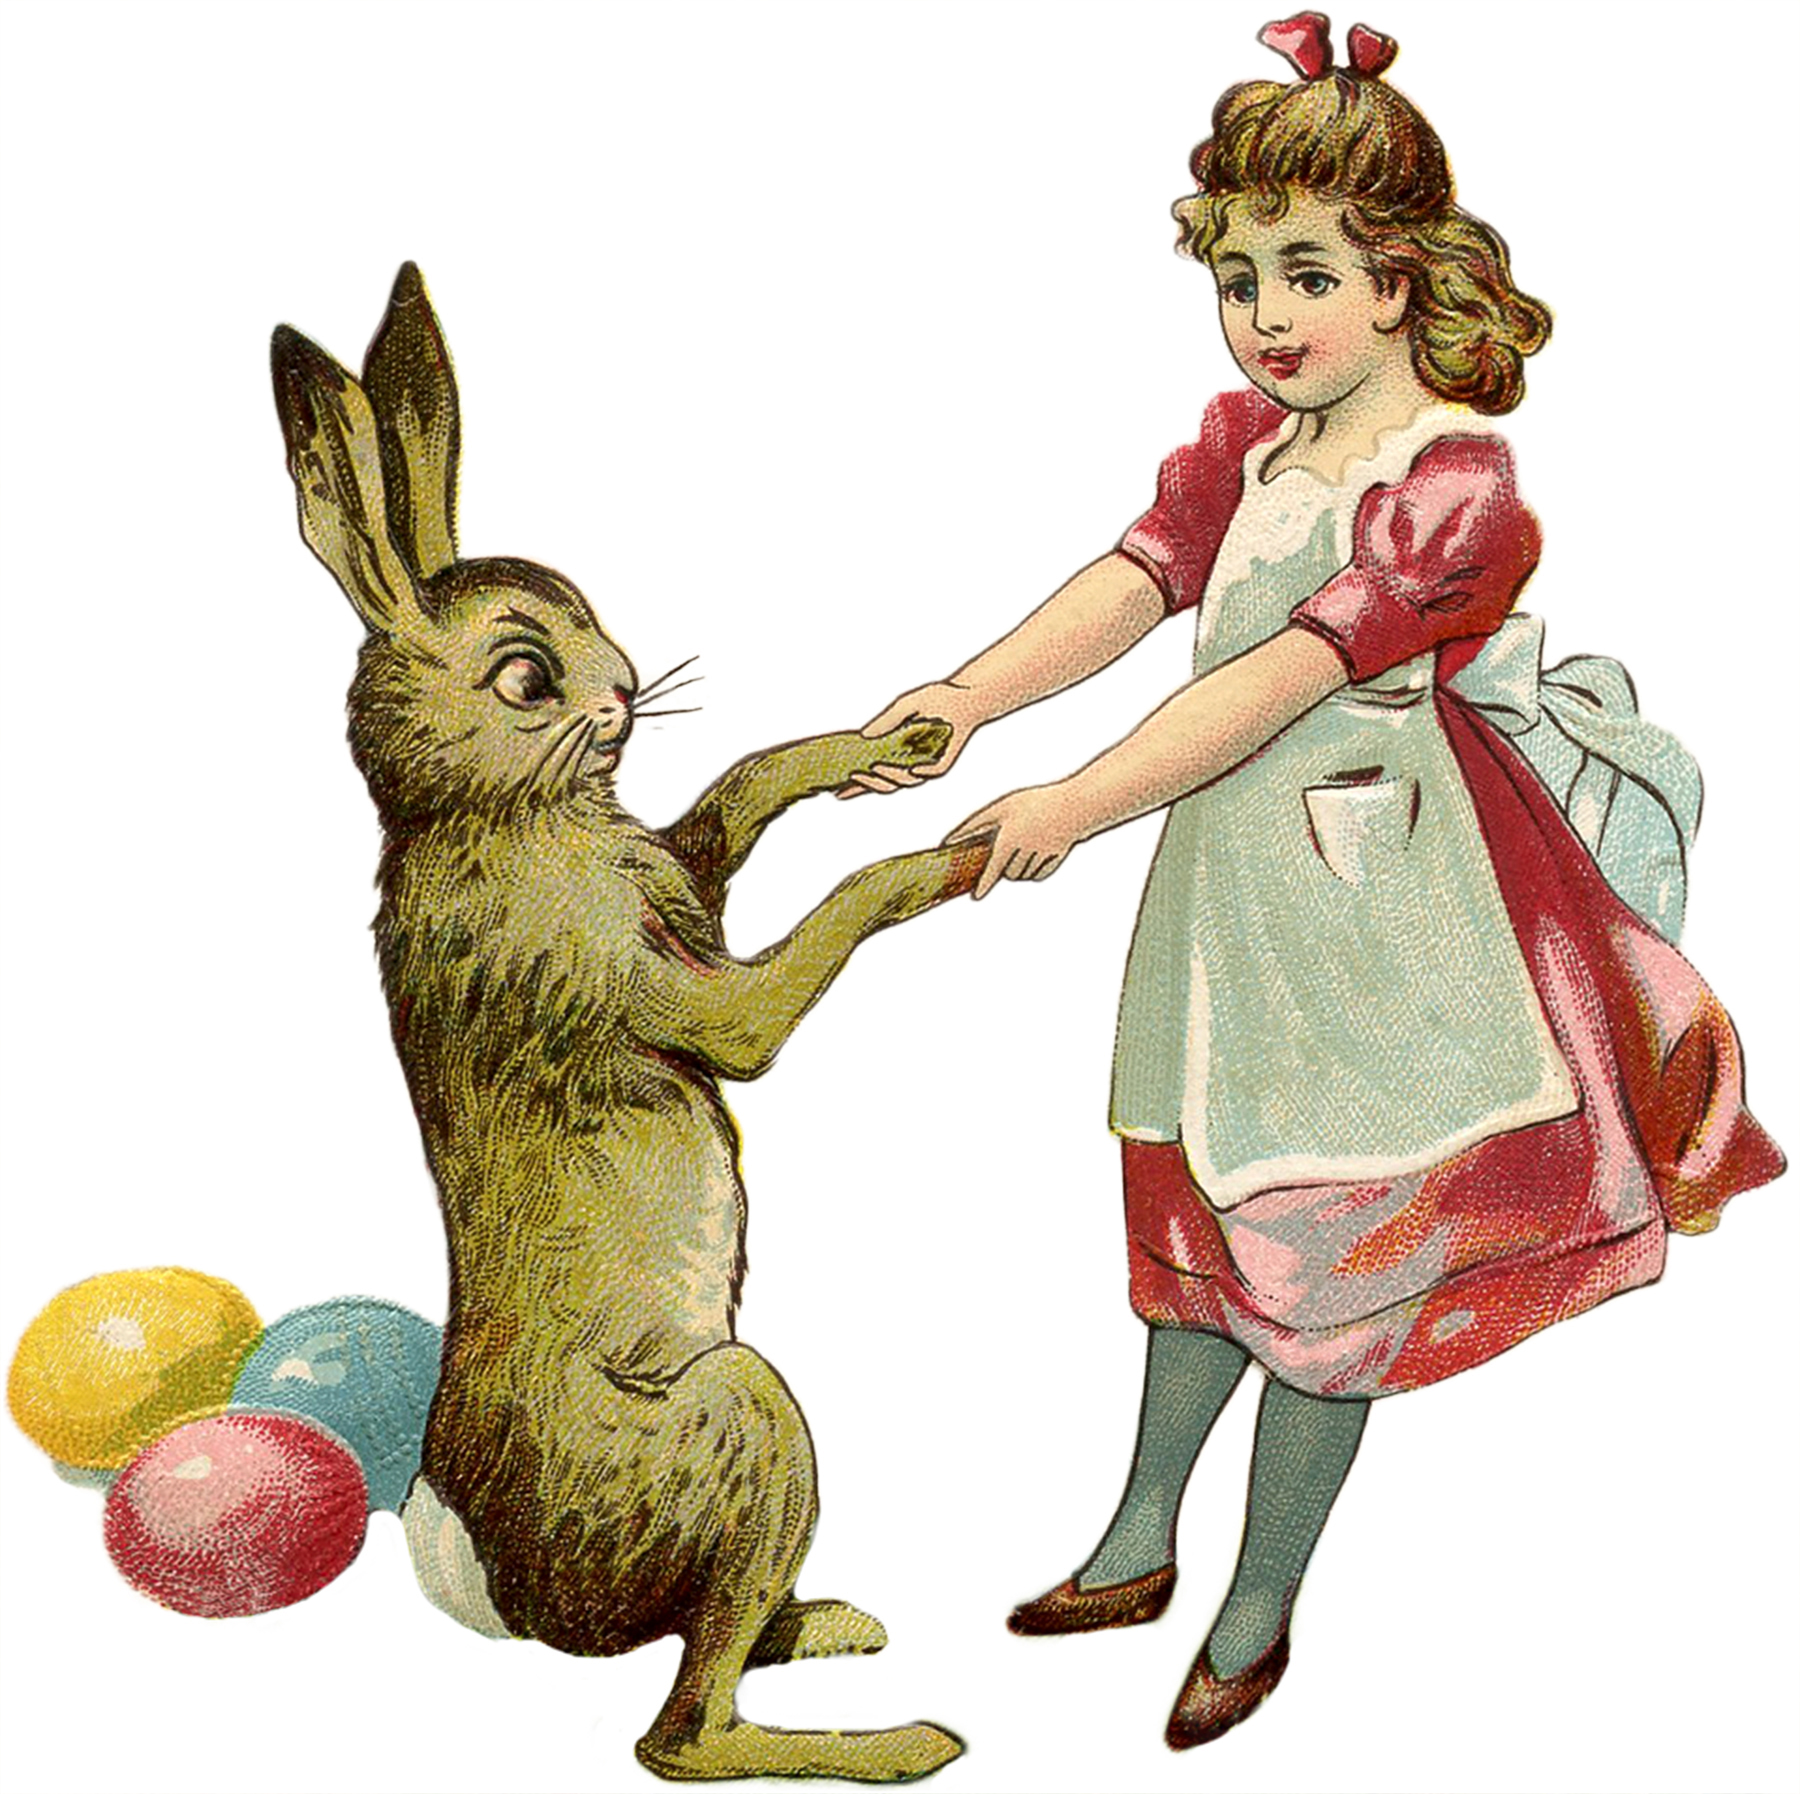 Free public domain vintage rabbit easter images clipart banner library stock 21 Easter Bunny Images Free - Updated! - The Graphics Fairy banner library stock